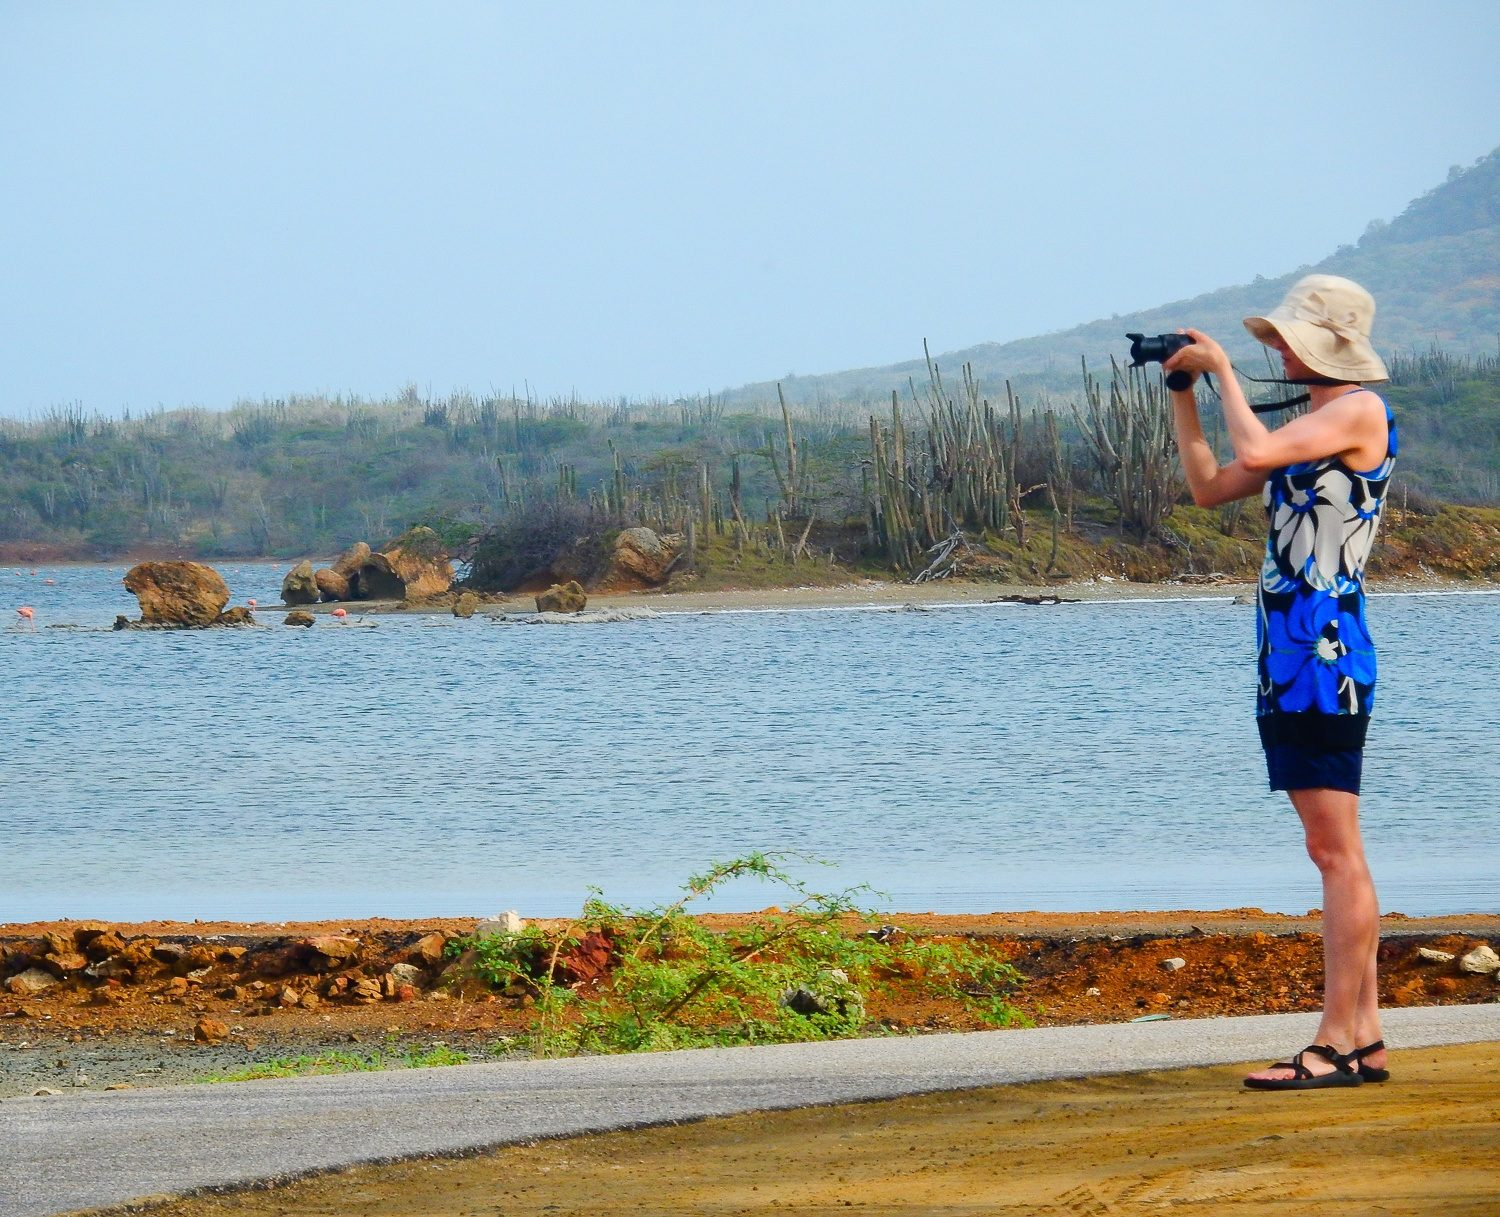 Me photographing flamingos, entranced by their dance.